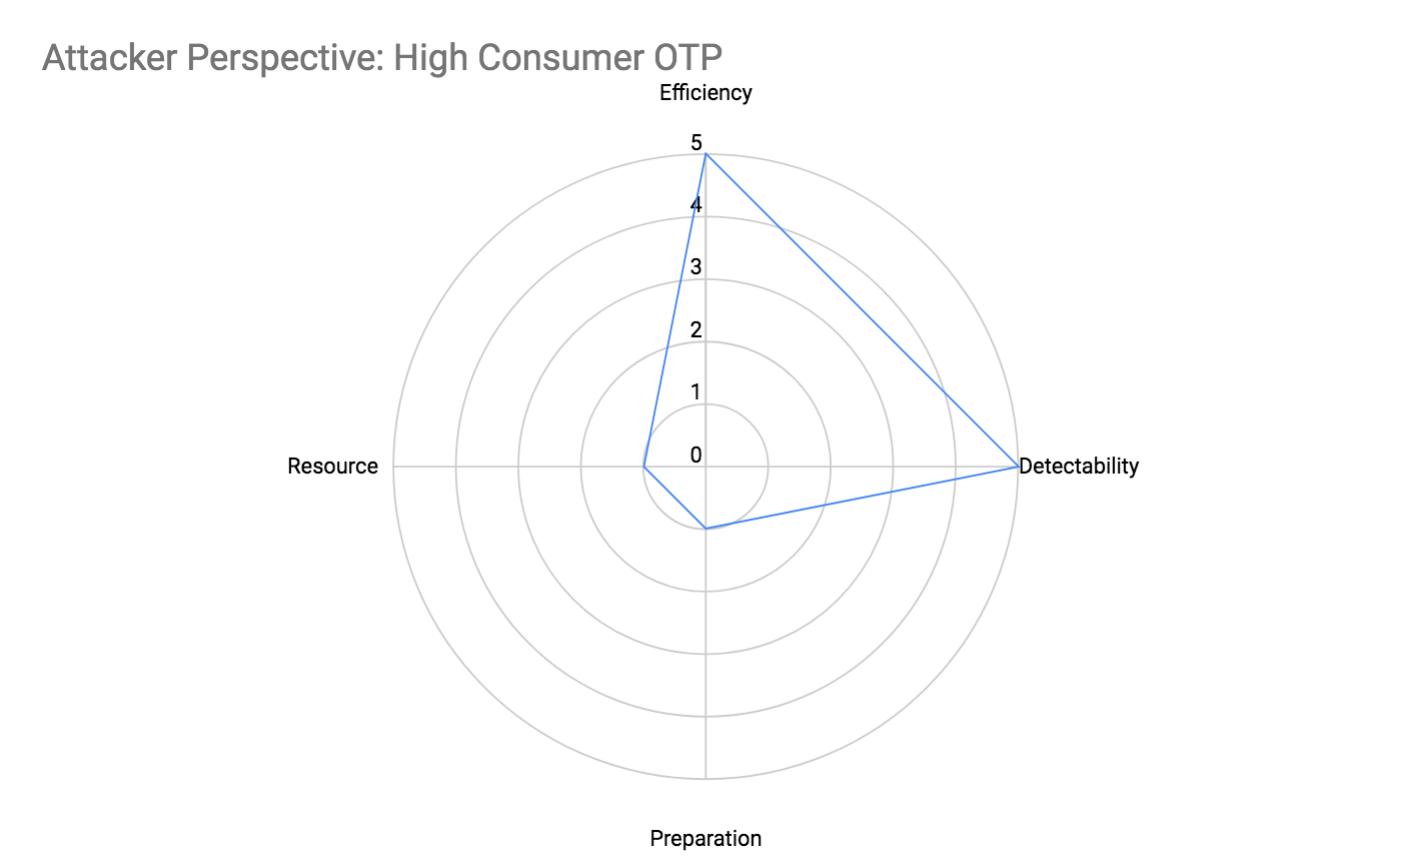 Attacker Perspective: High Consumer OTP Attributes